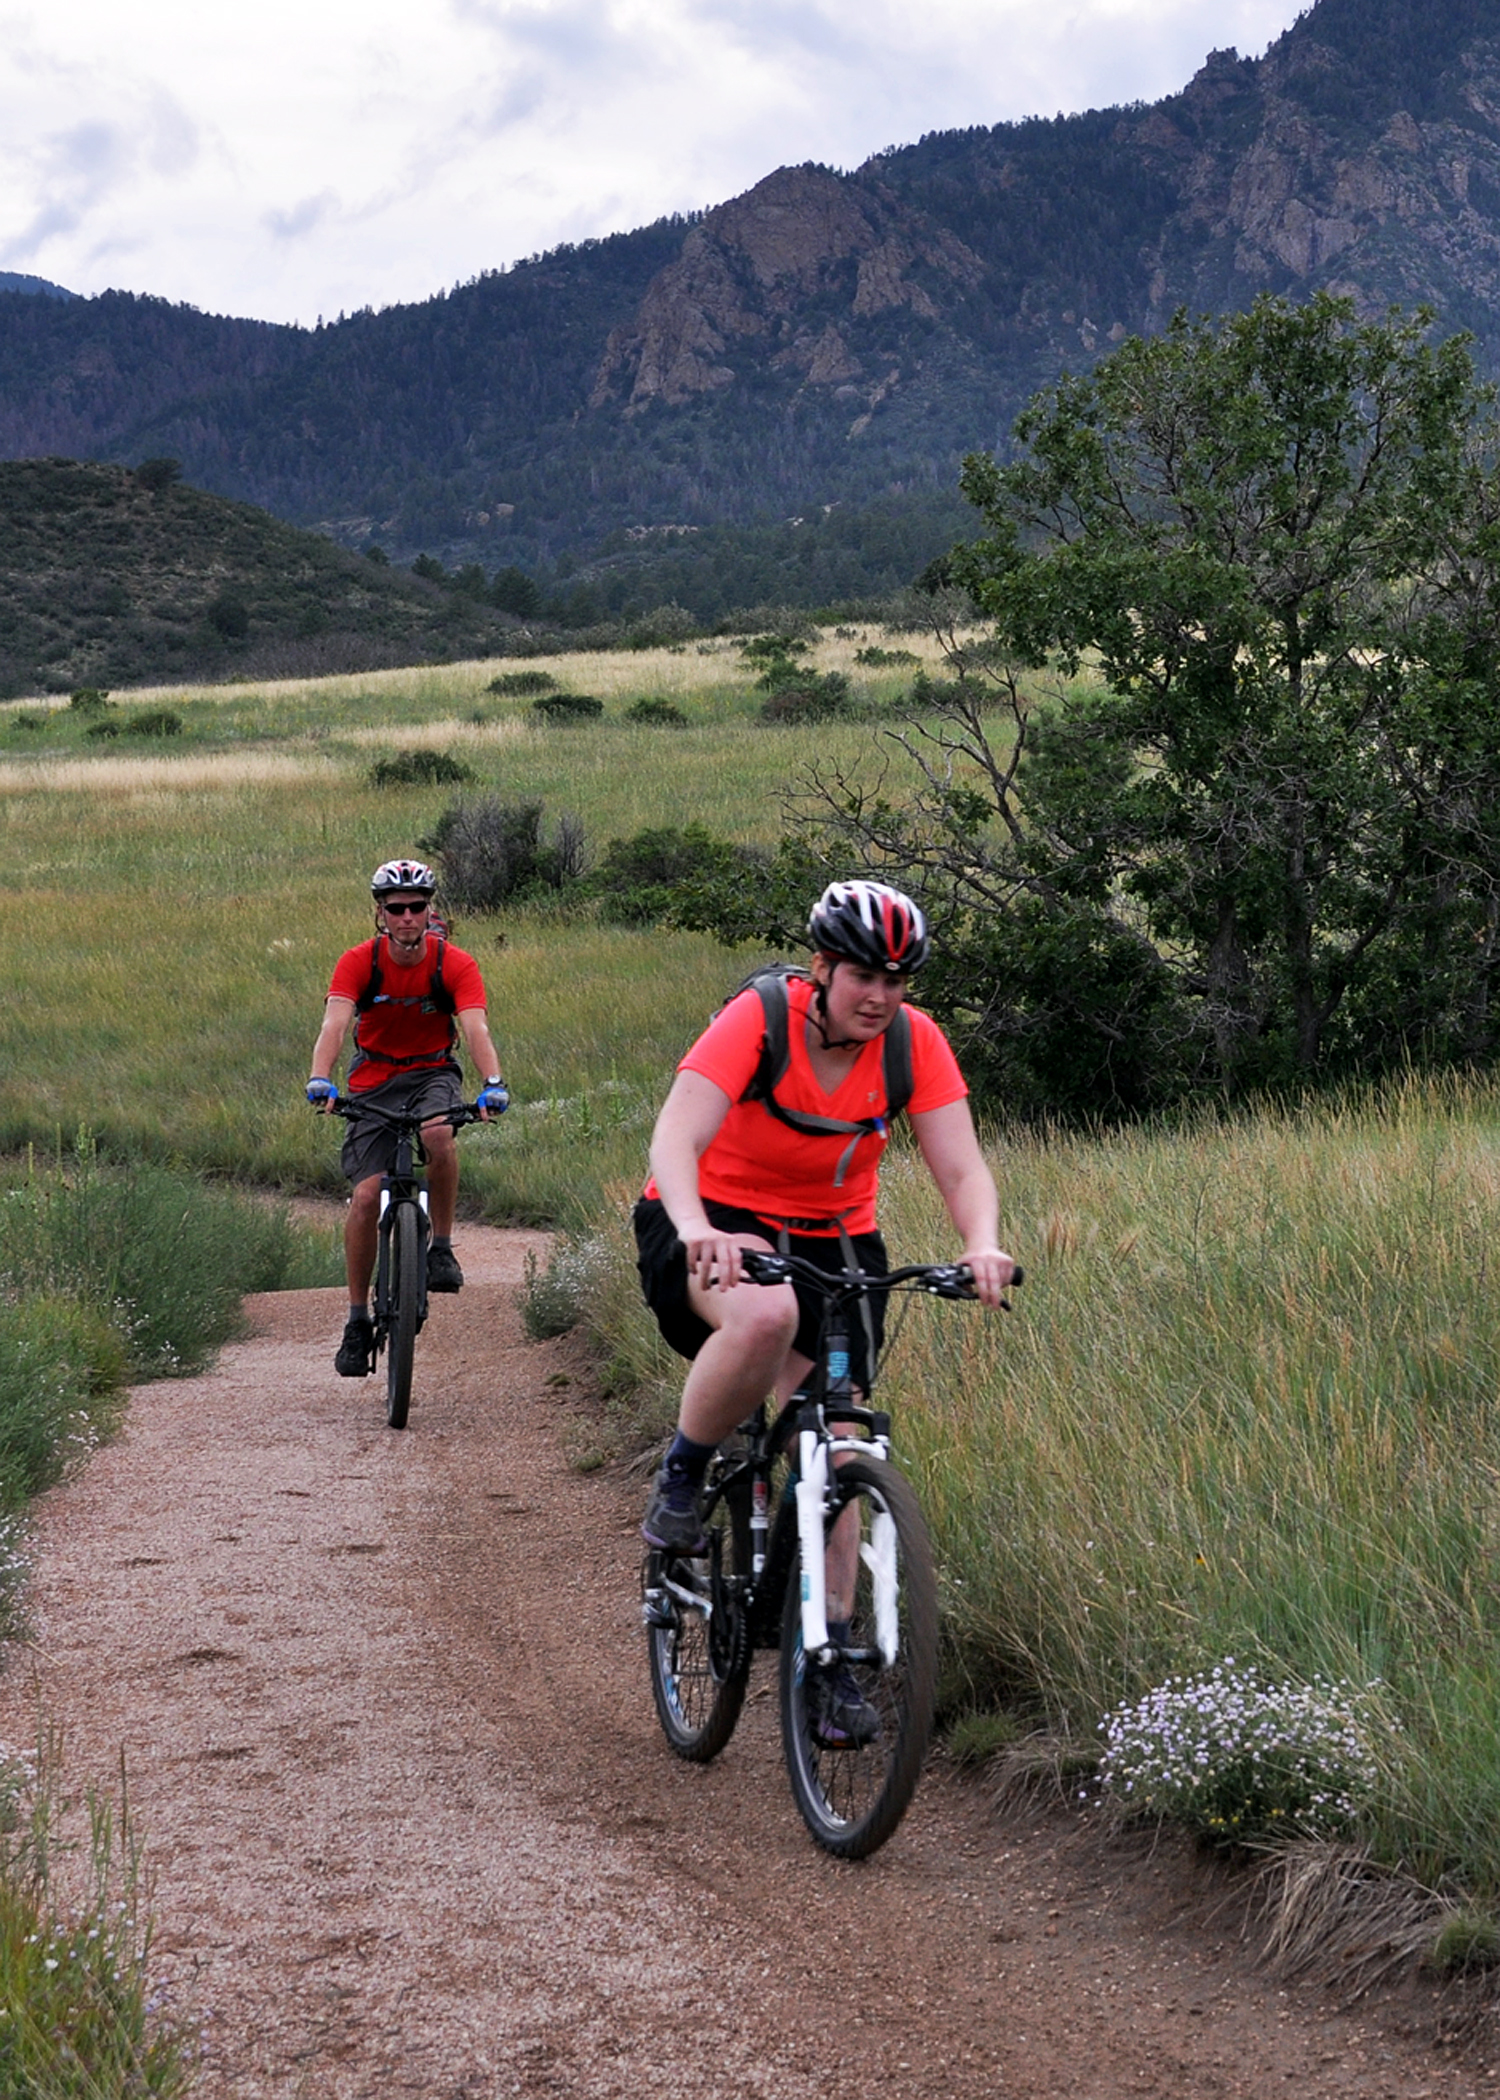 Two people in red shirts on mountain bikes ride on a trail toward the photographer, Rocky Mountains in the background.